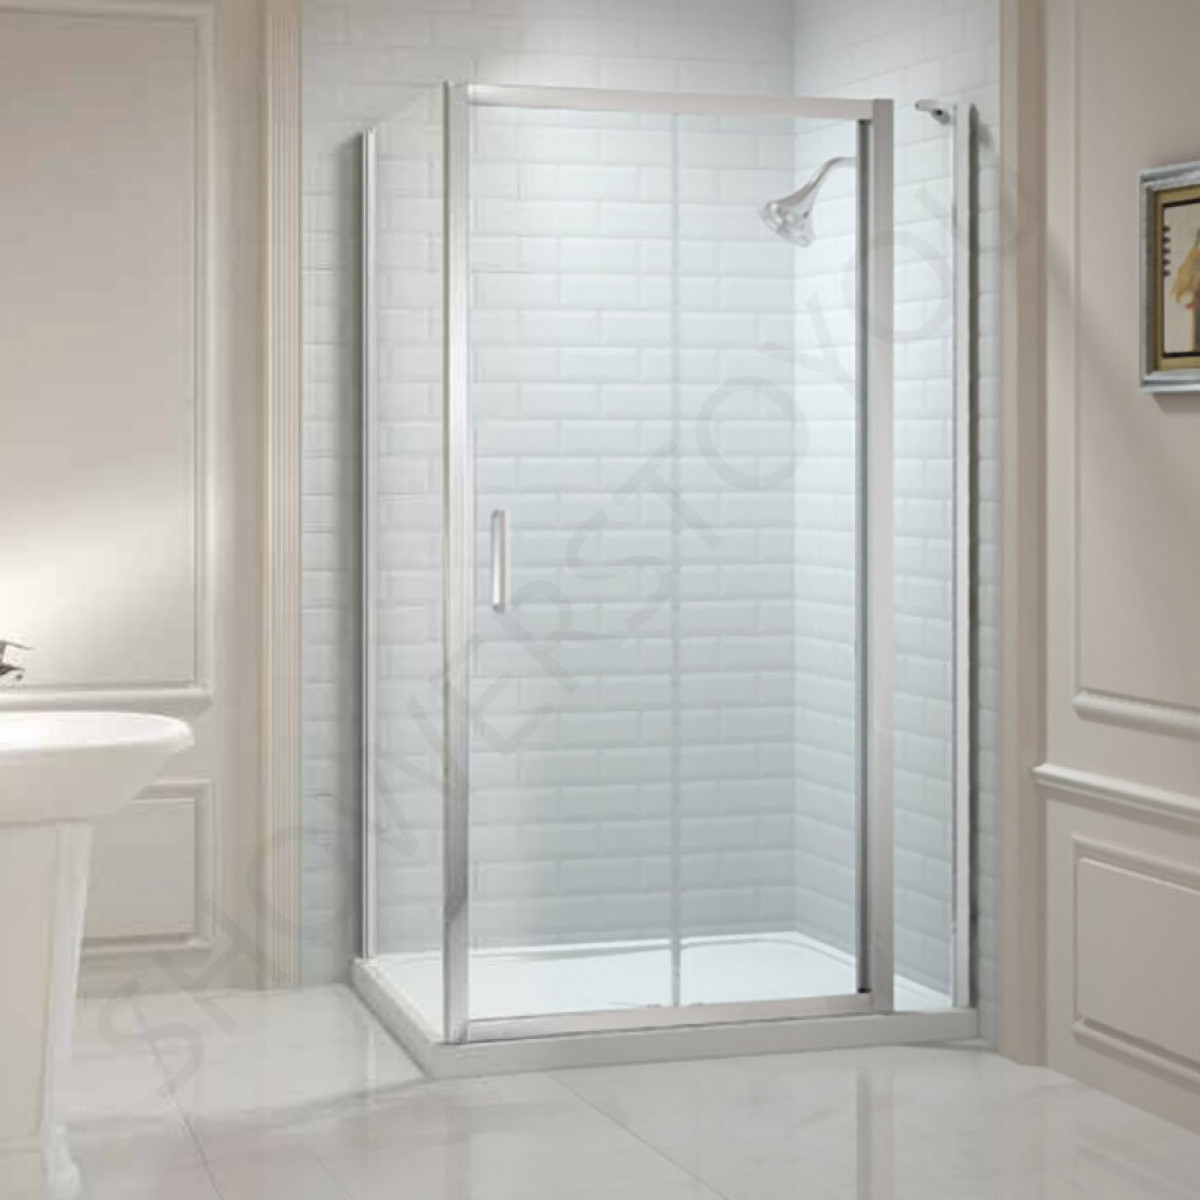 Merlyn 8 series 1300mm sliding shower door and inline panel for 1300mm sliding shower door